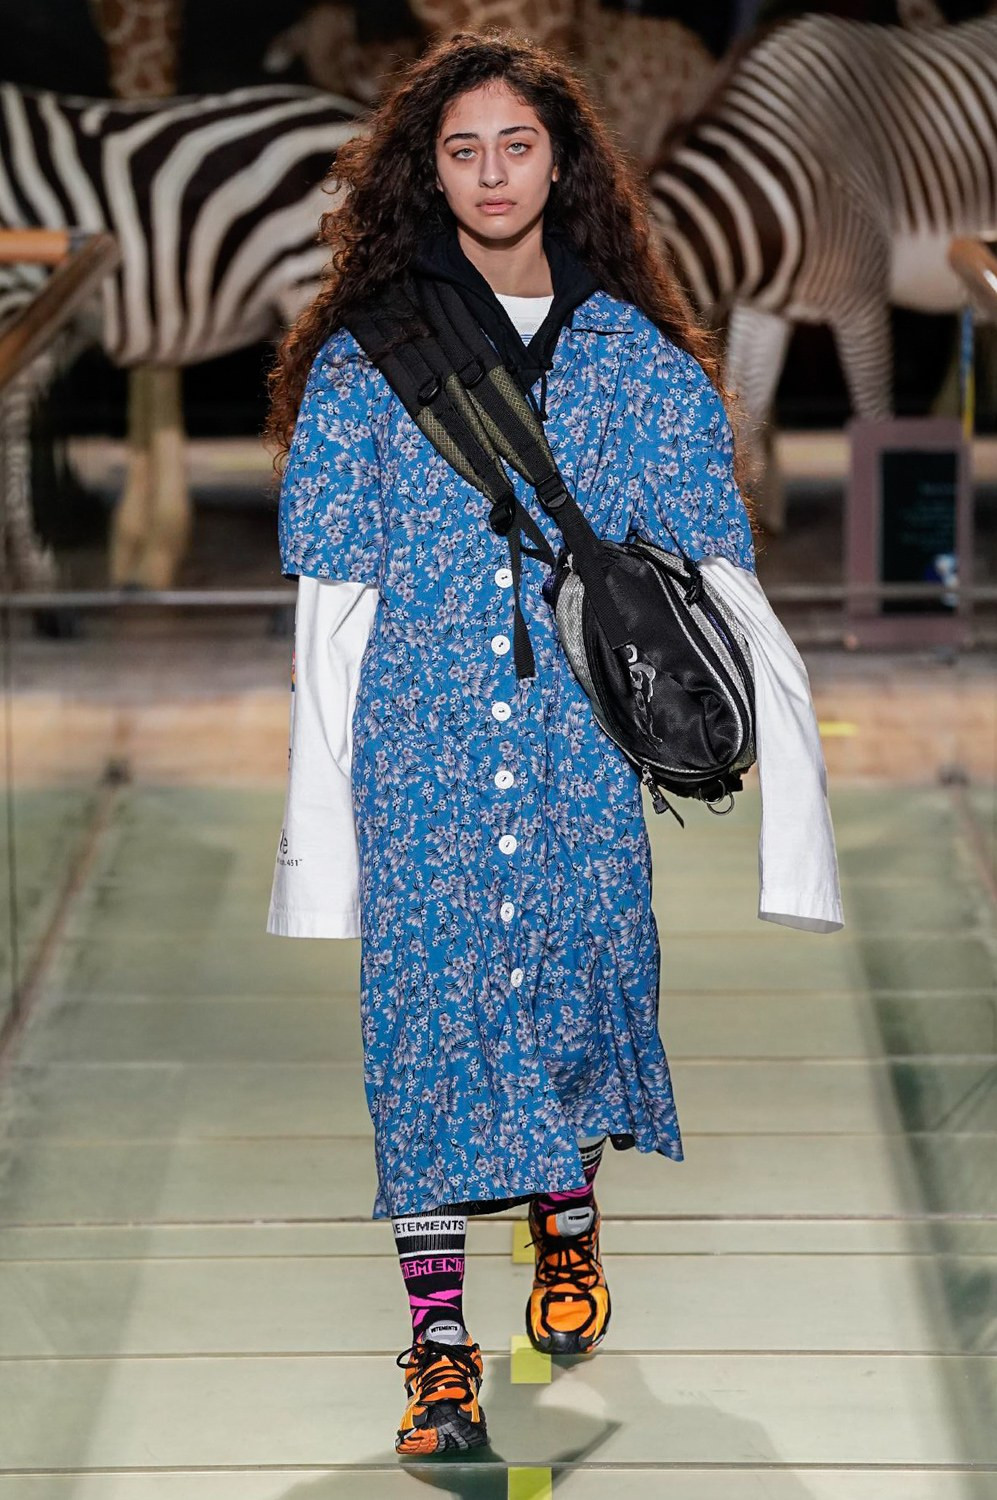 https---vetements-aw19-dtf-magazine.com-image-2019-01-vetements-fall-winter-2019-paris-fashion-week-46